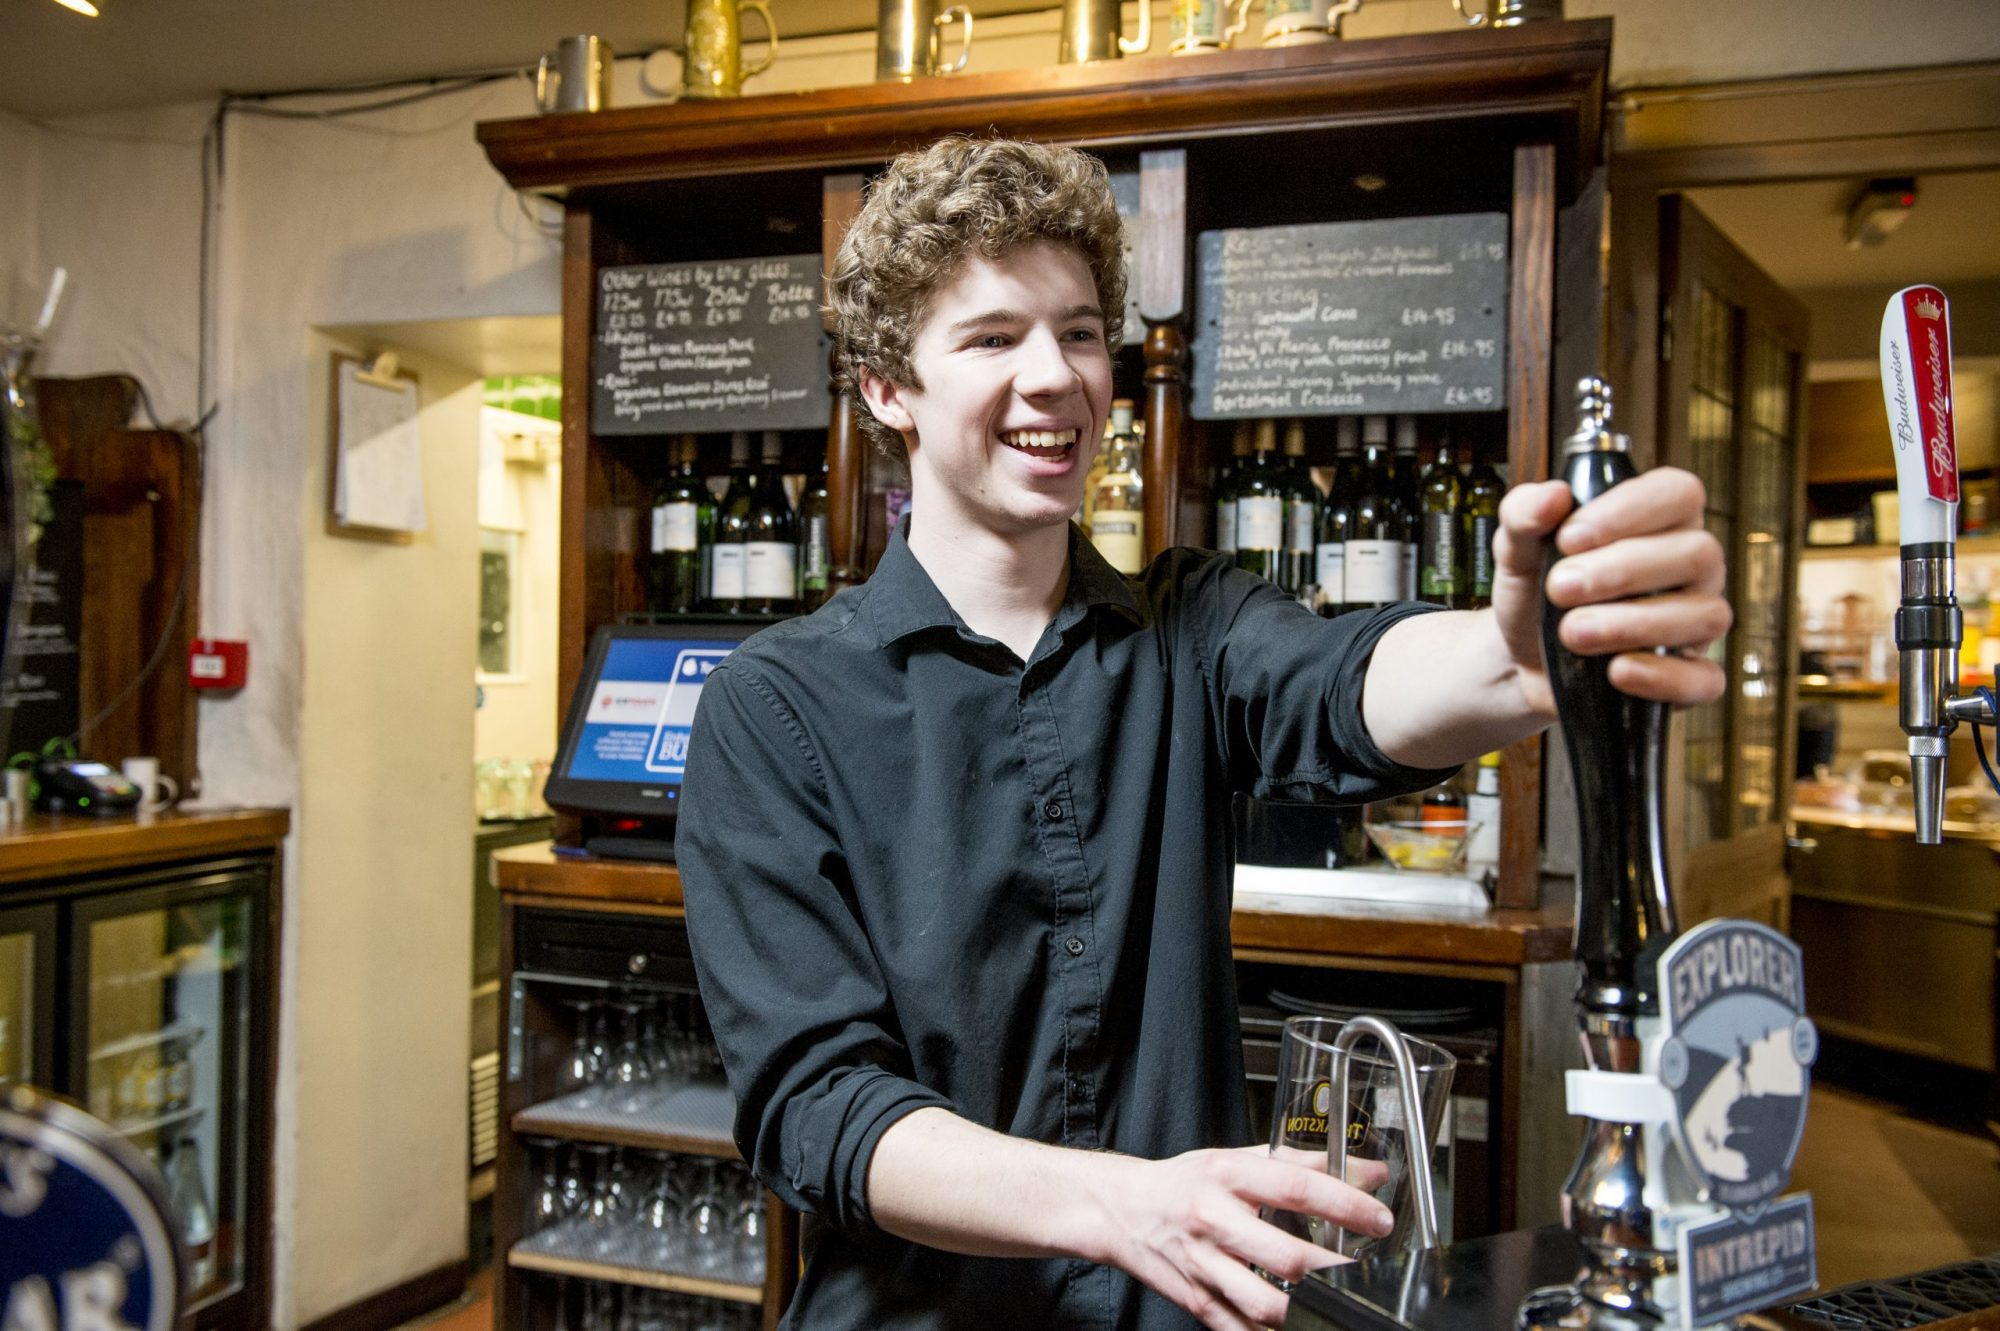 New £3.62 million support programme to help communities take control of their local pub